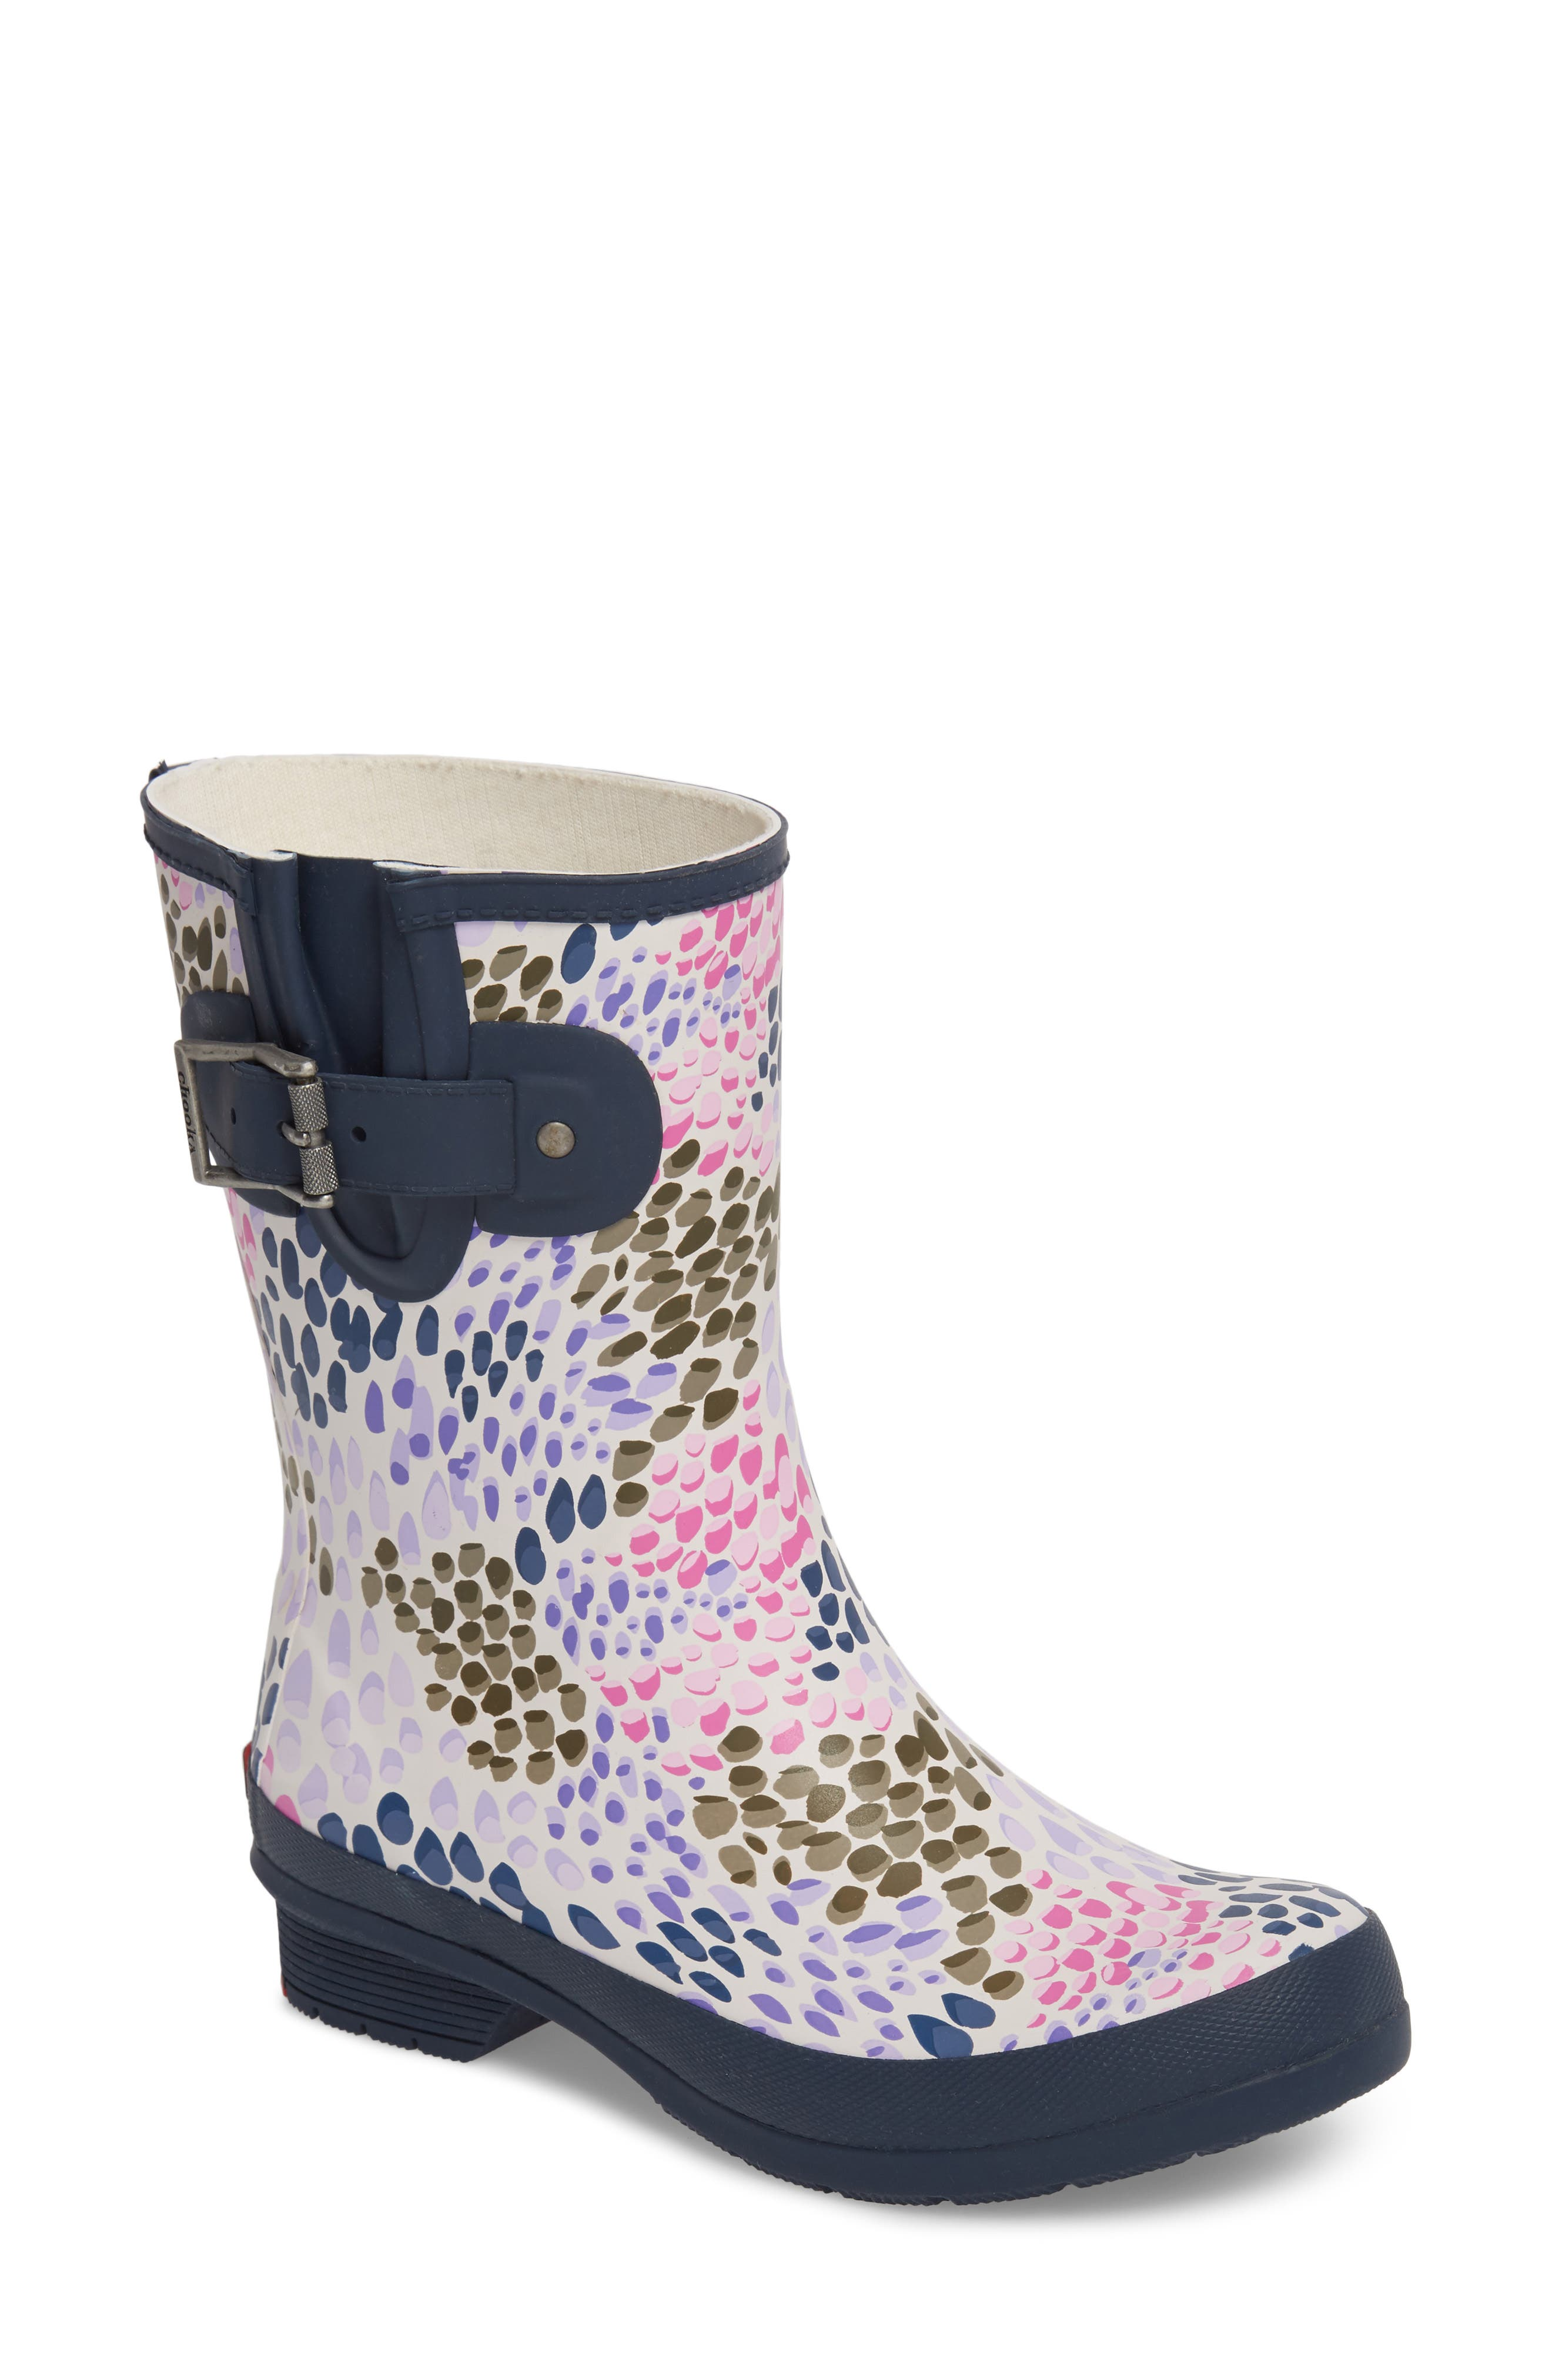 Tillie Mid Rain Boot,                         Main,                         color, NAVY